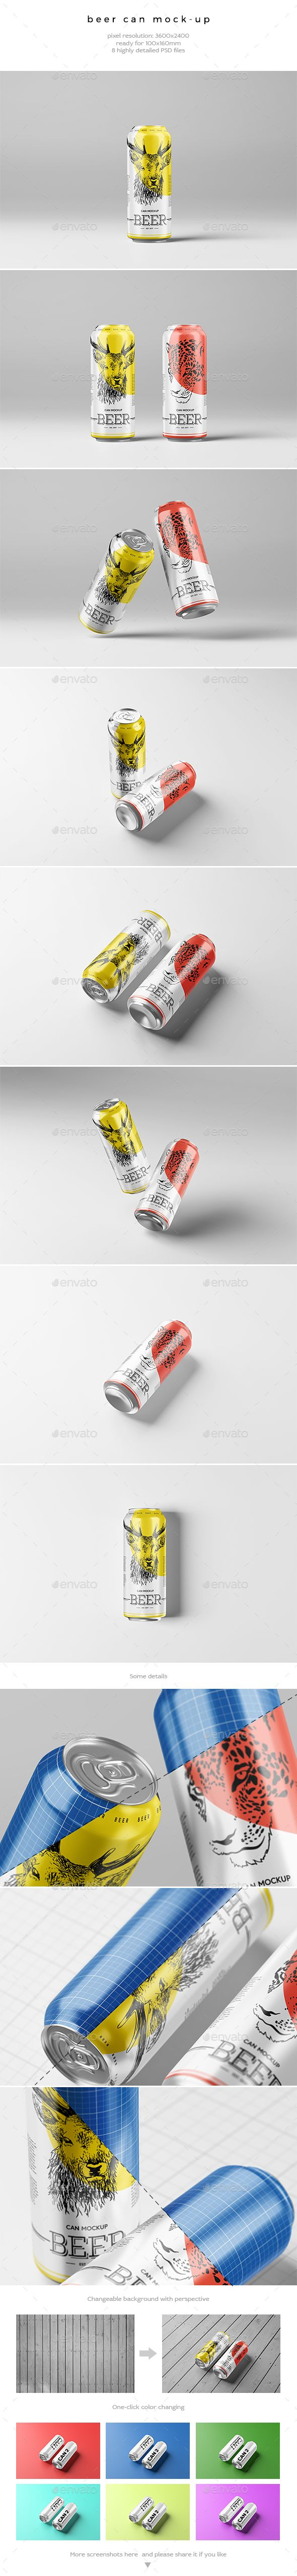 Beer Can MockUp — Photoshop PSD #jerrycan #drink • Download ➝ https://graphicriver.net/item/beer-can-mockup/20356303?ref=pxcr